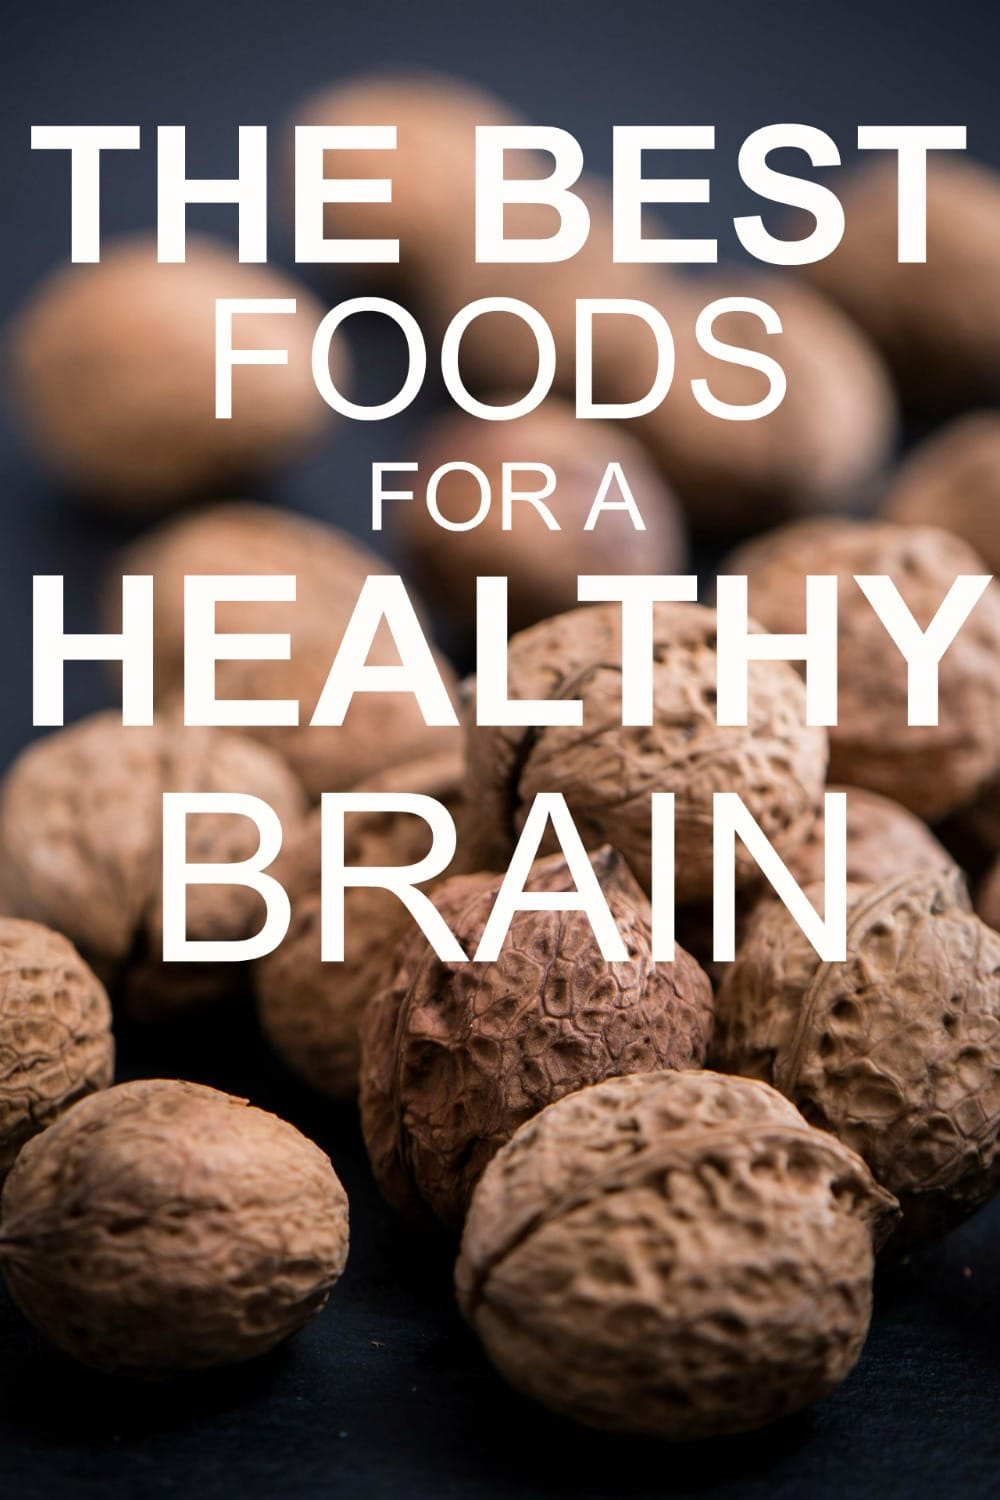 I was looking for the foods to eat that increase memory and focus. This is a great article on brain health!! Love it!